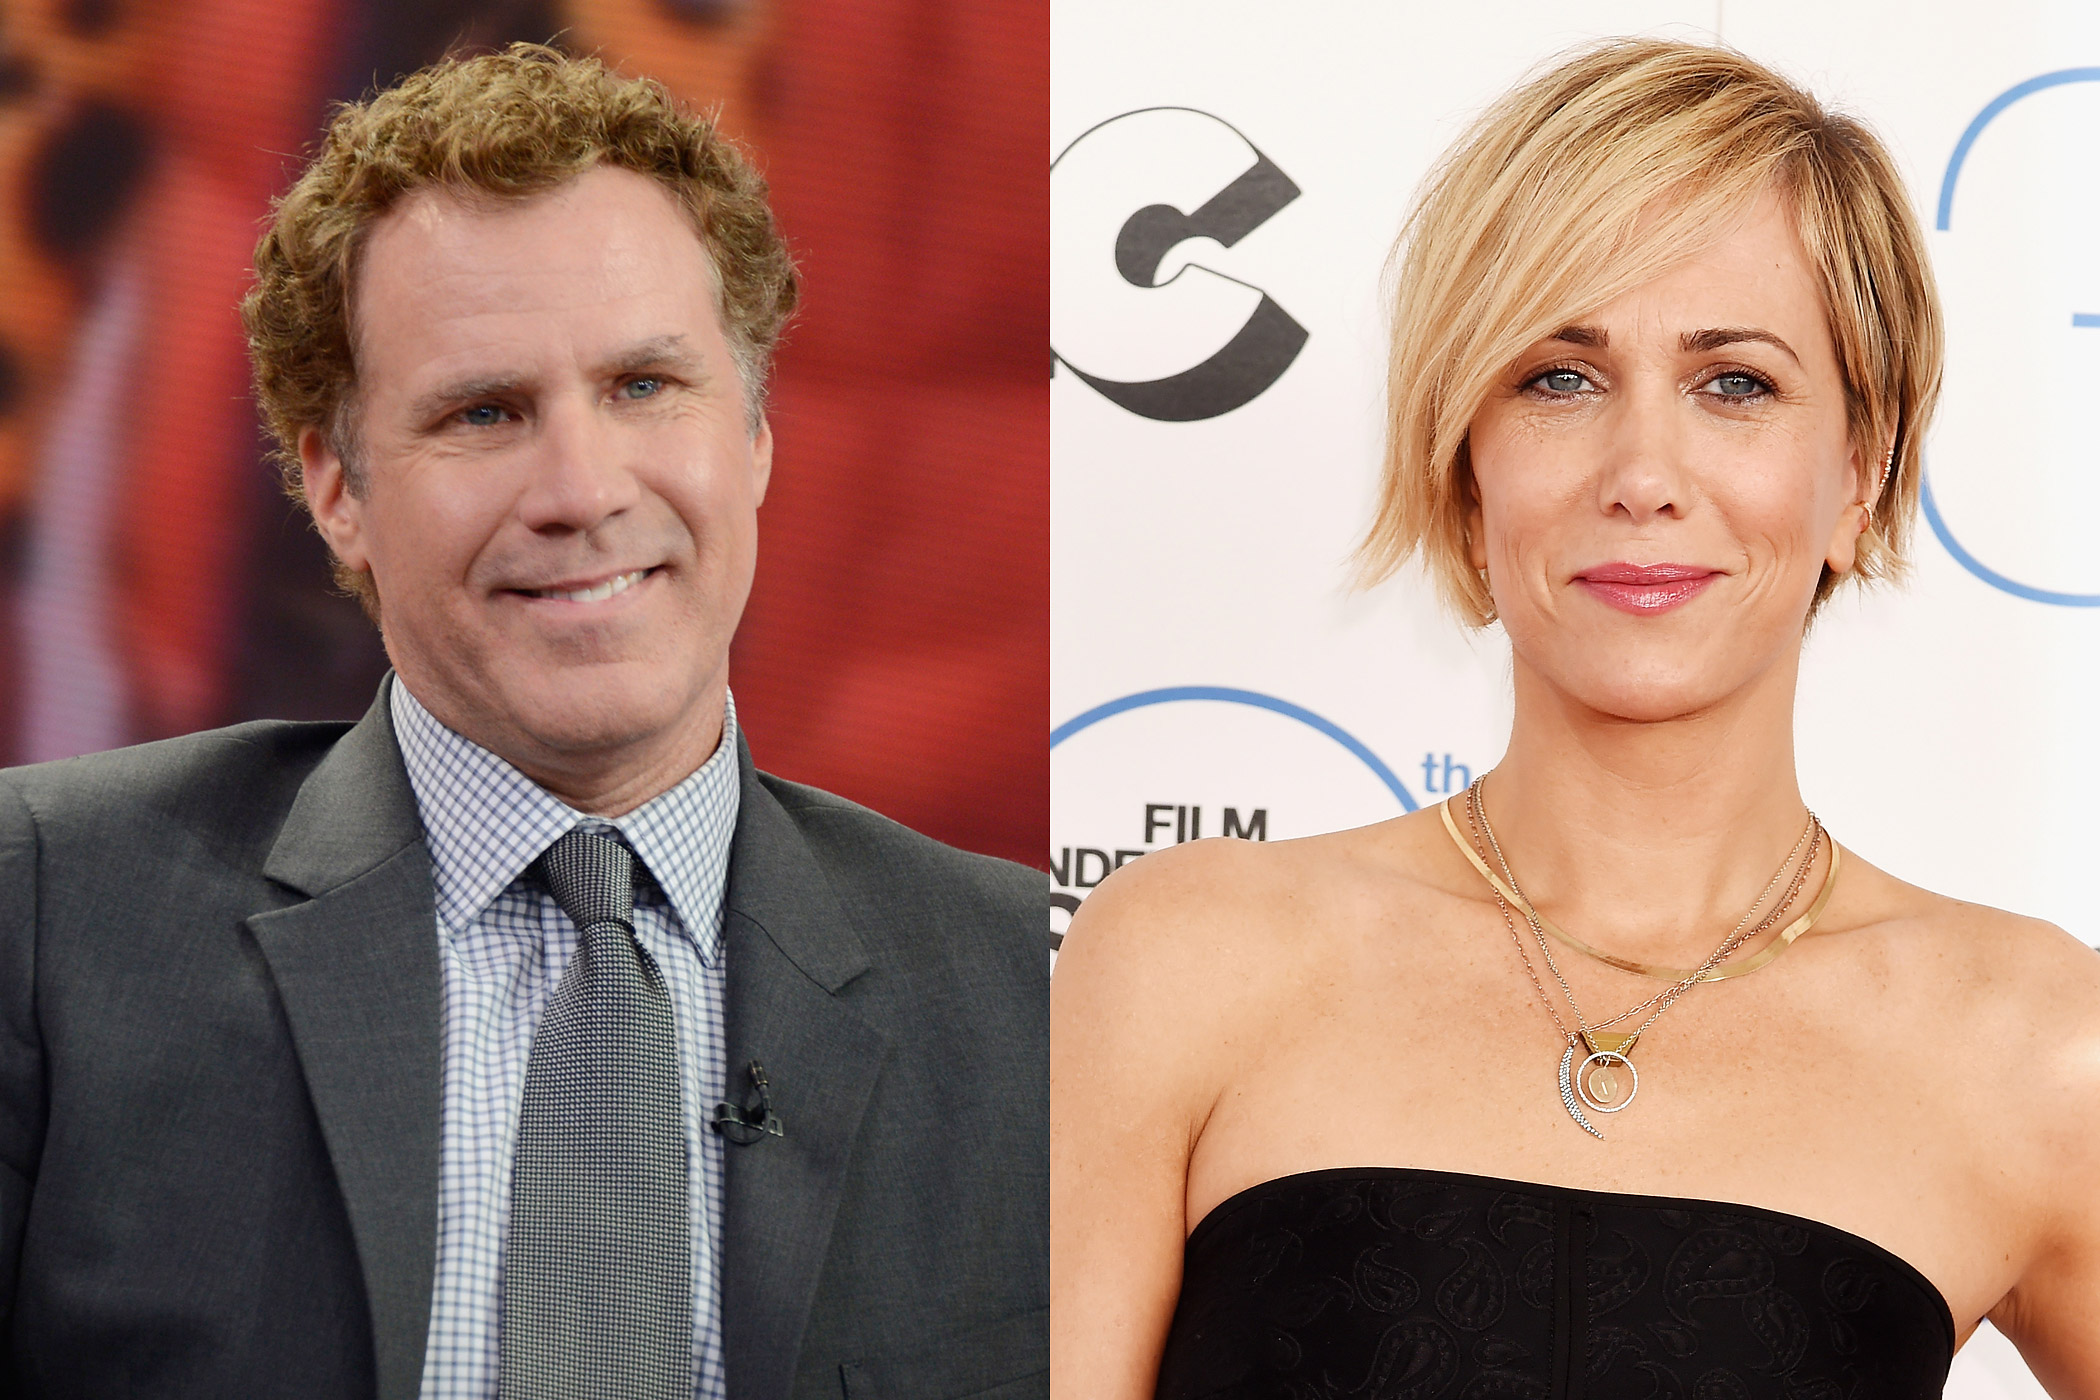 From left: Will Ferrell and Kristen Wiig